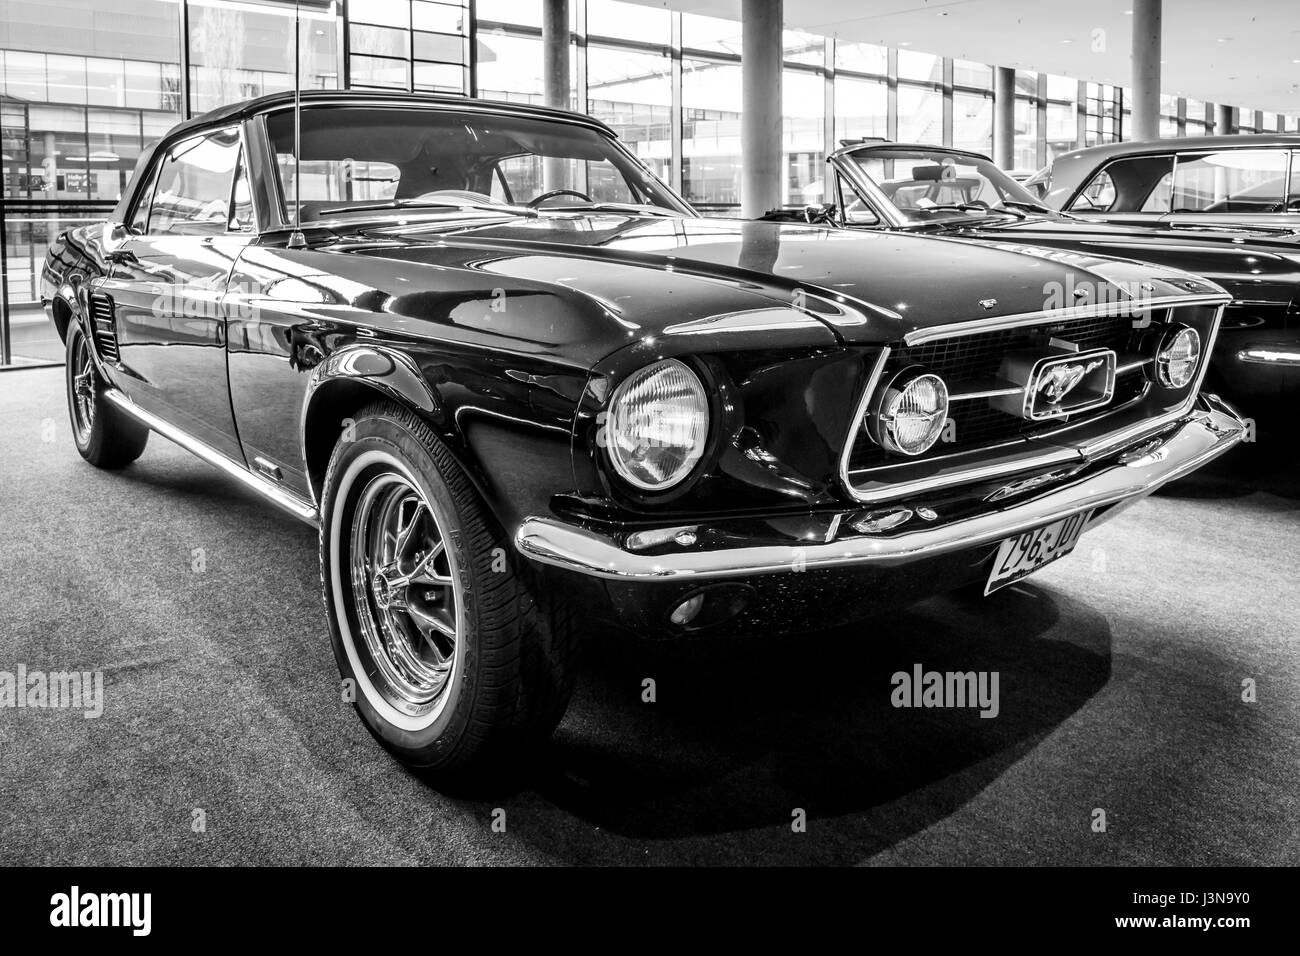 ford mustang first generation stockfotos ford mustang first generation bilder alamy. Black Bedroom Furniture Sets. Home Design Ideas